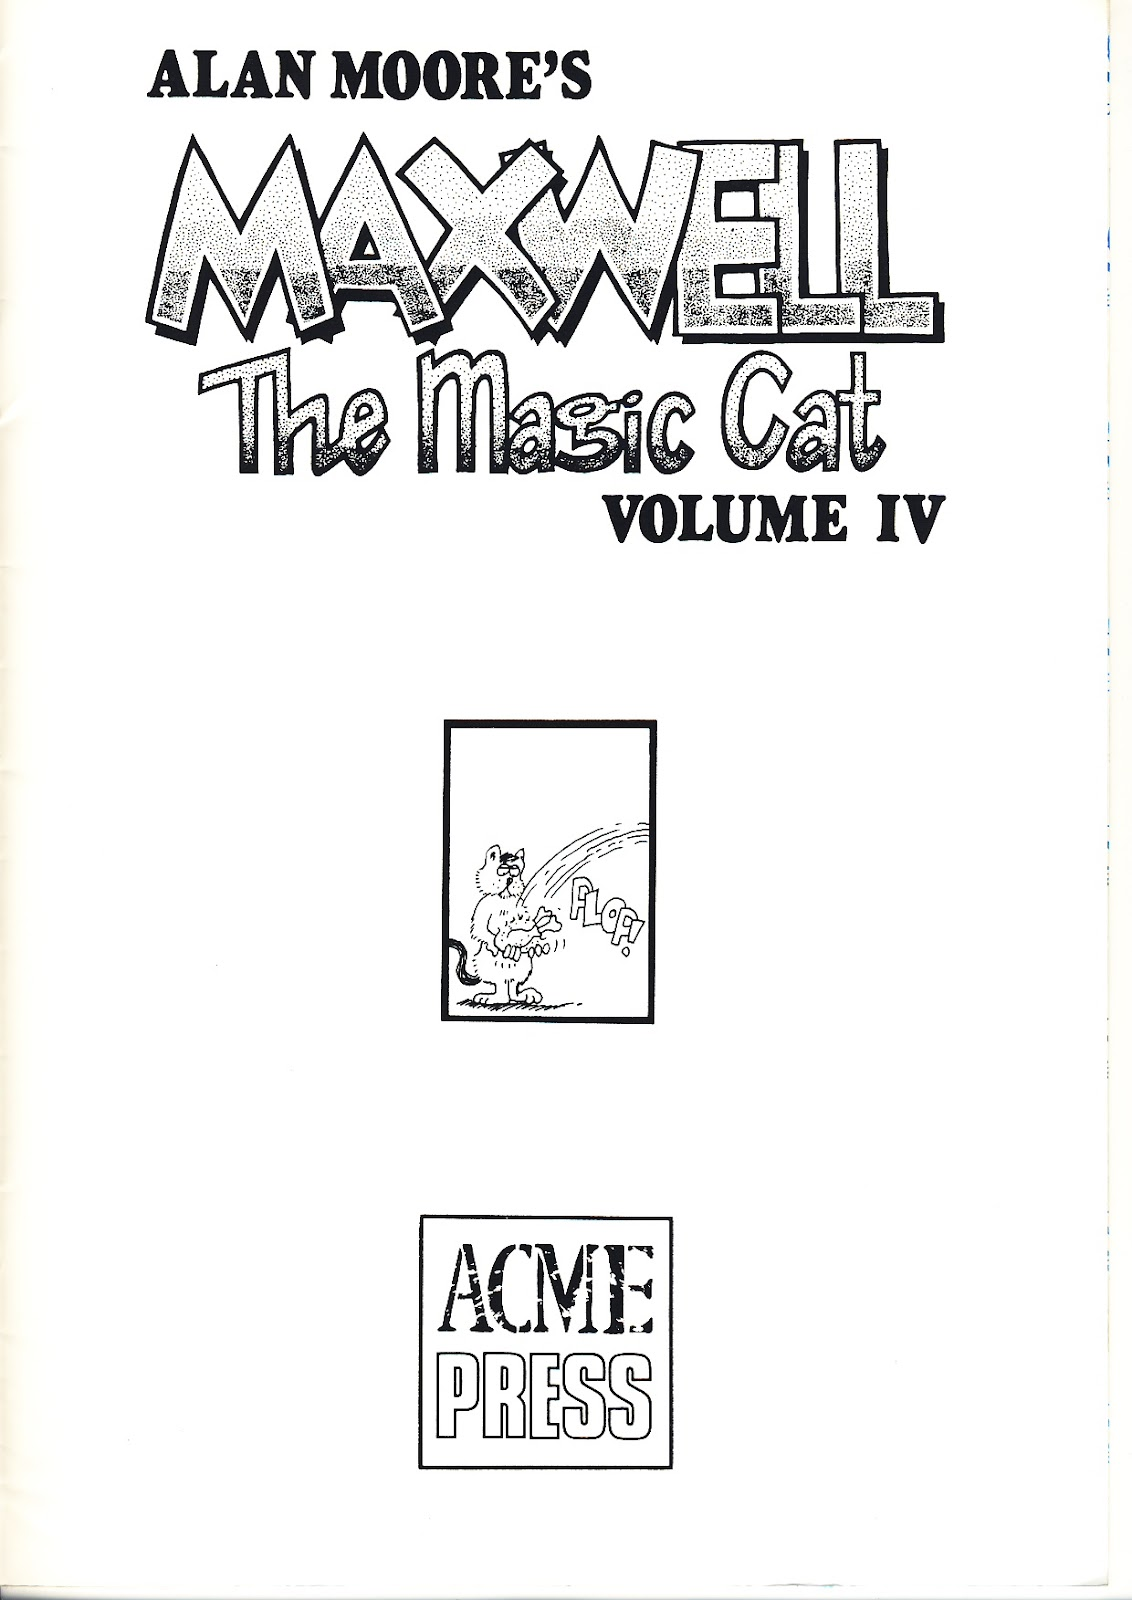 Read online Alan Moore's Maxwell the Magic Cat comic -  Issue #4 - 5